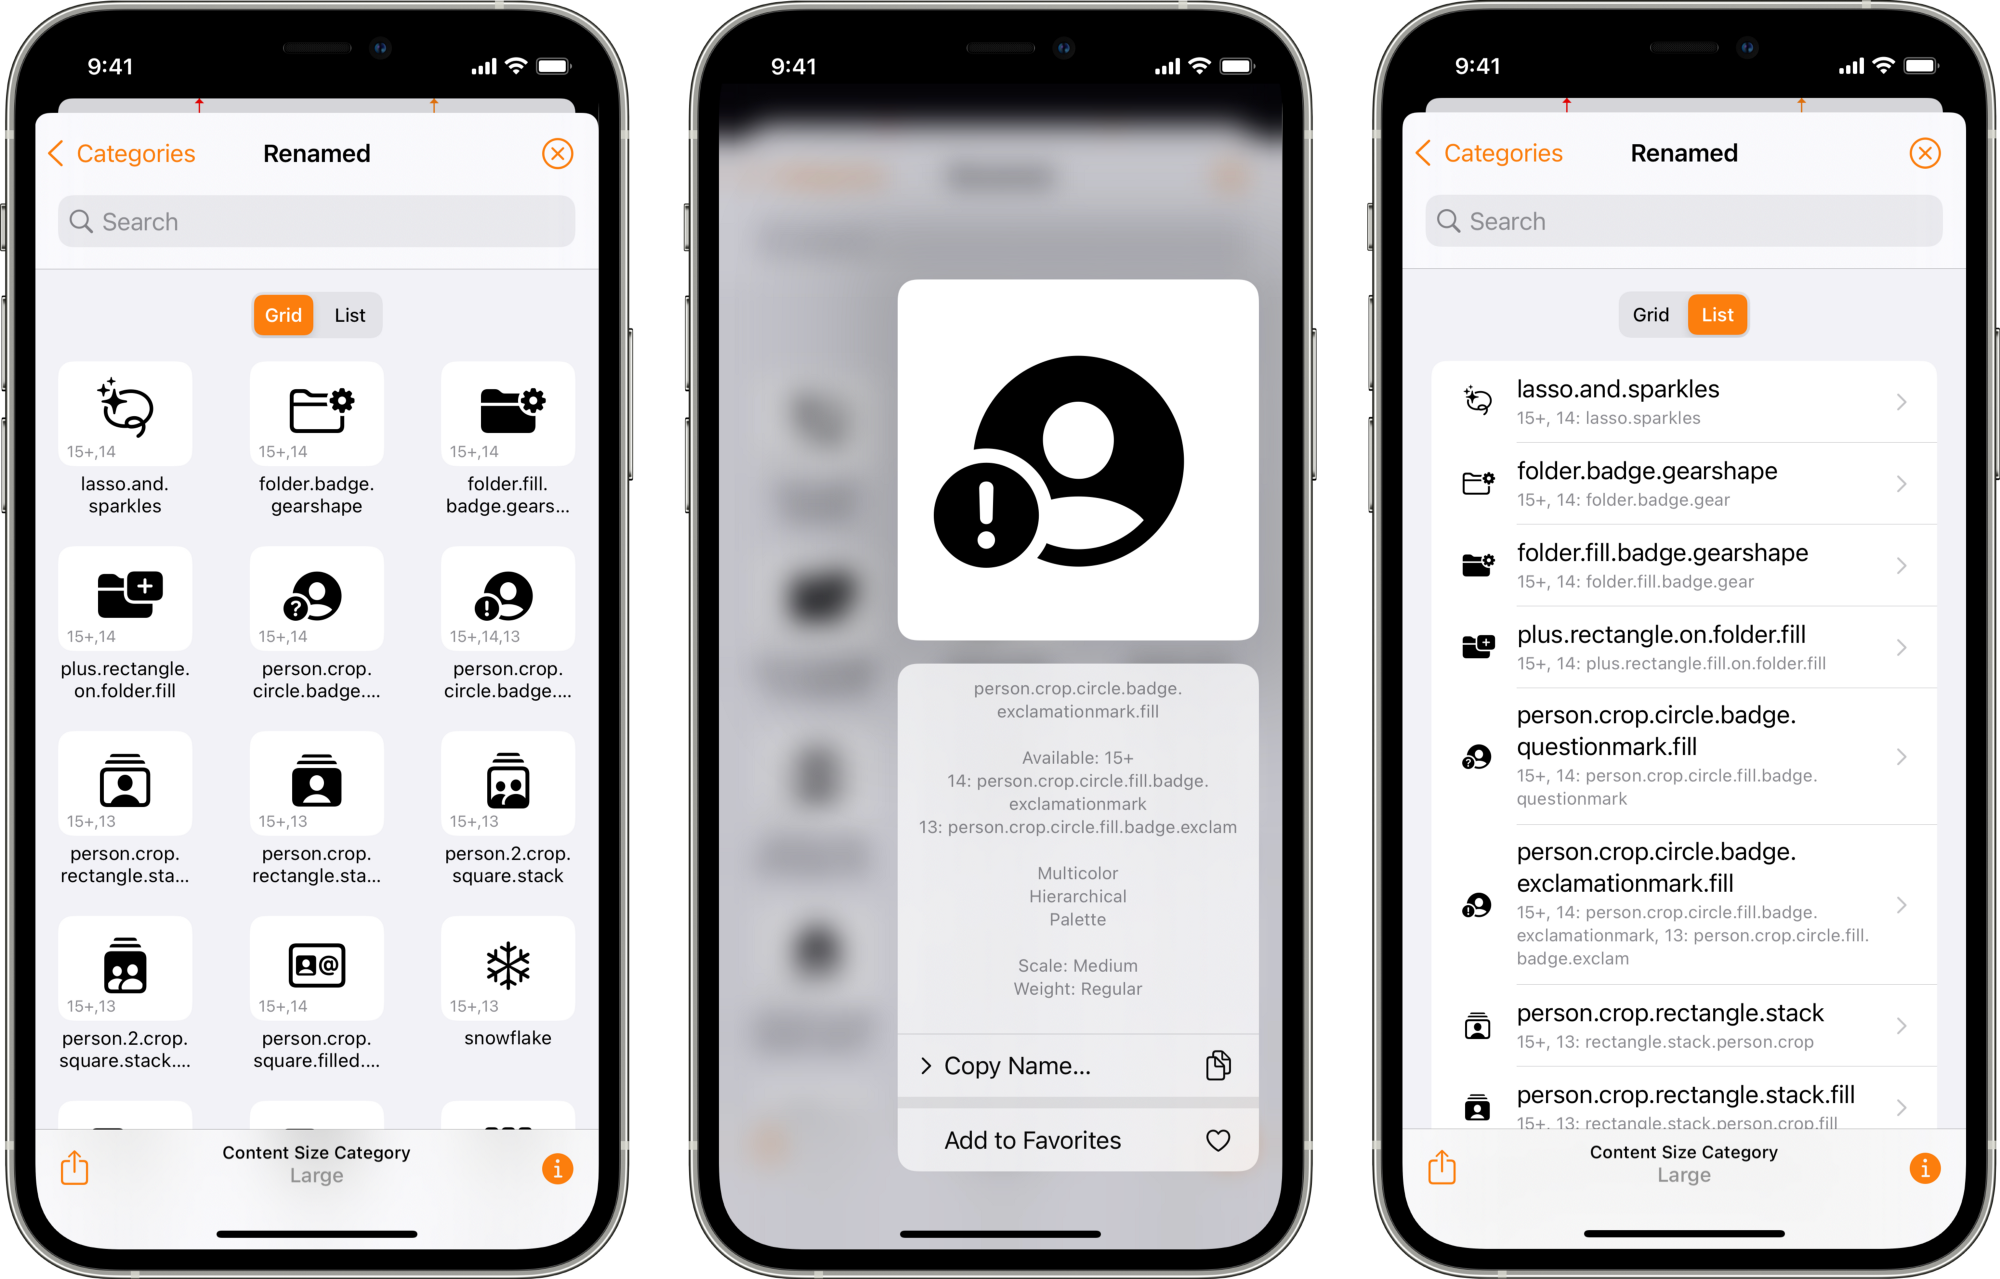 iOS 15 System Images 'Renamed' collection, context menu and List view in Adaptivity v8.0 on iPhone 12 Pro